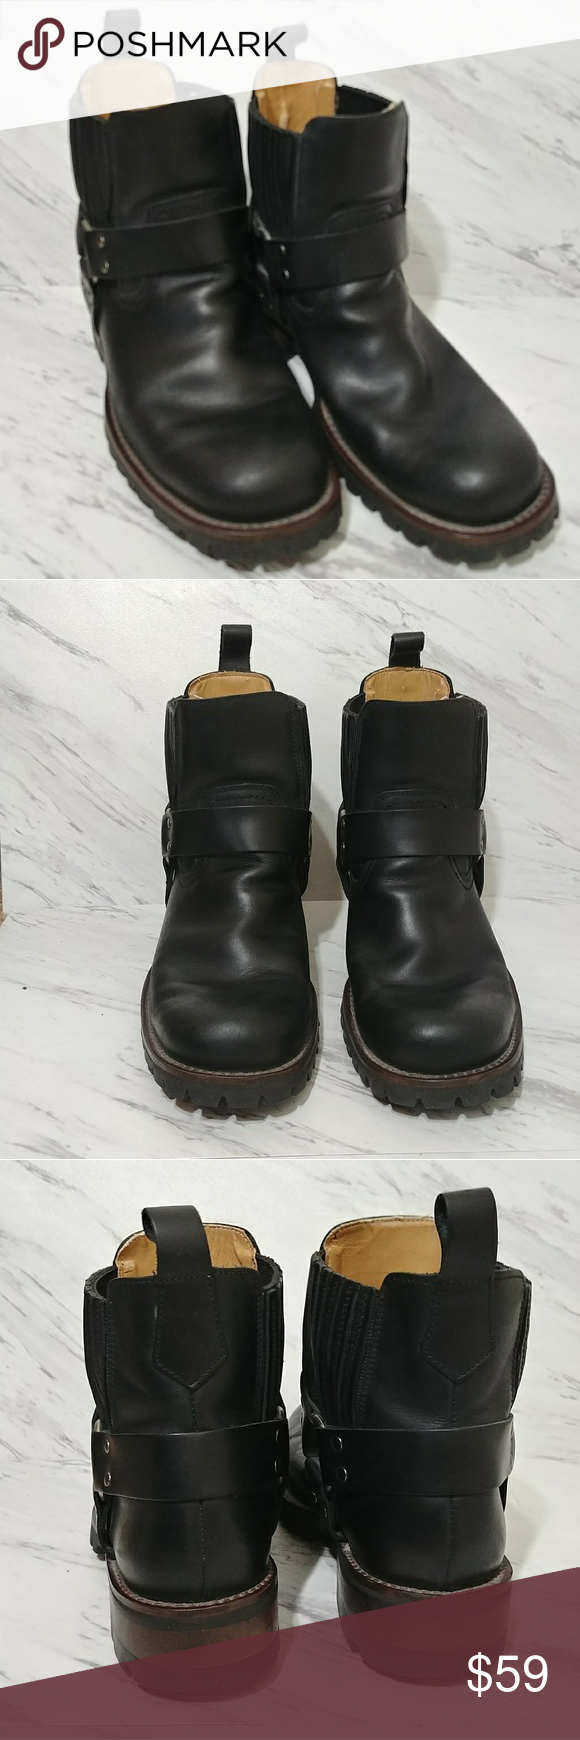 0dfb668d946 GBX Boots Black leather GBX motorcycle boots are in excellent ...